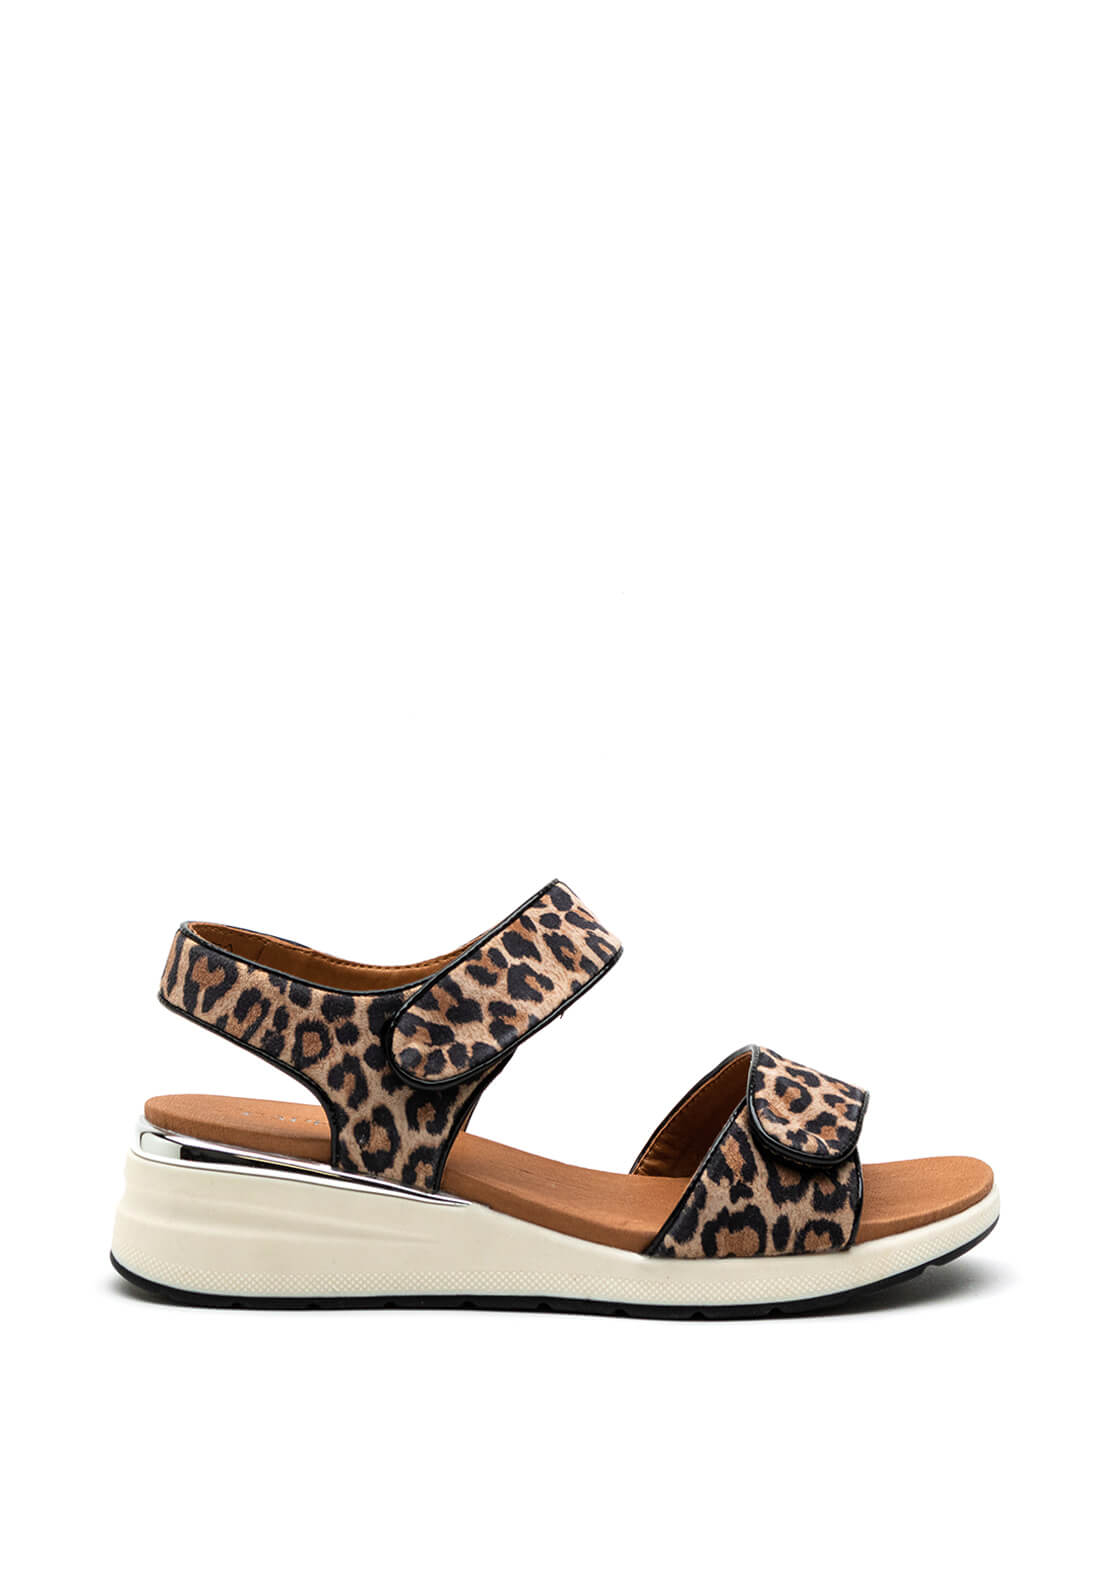 Caprice Leather Dual Strap Chunky Sandal, Leopard